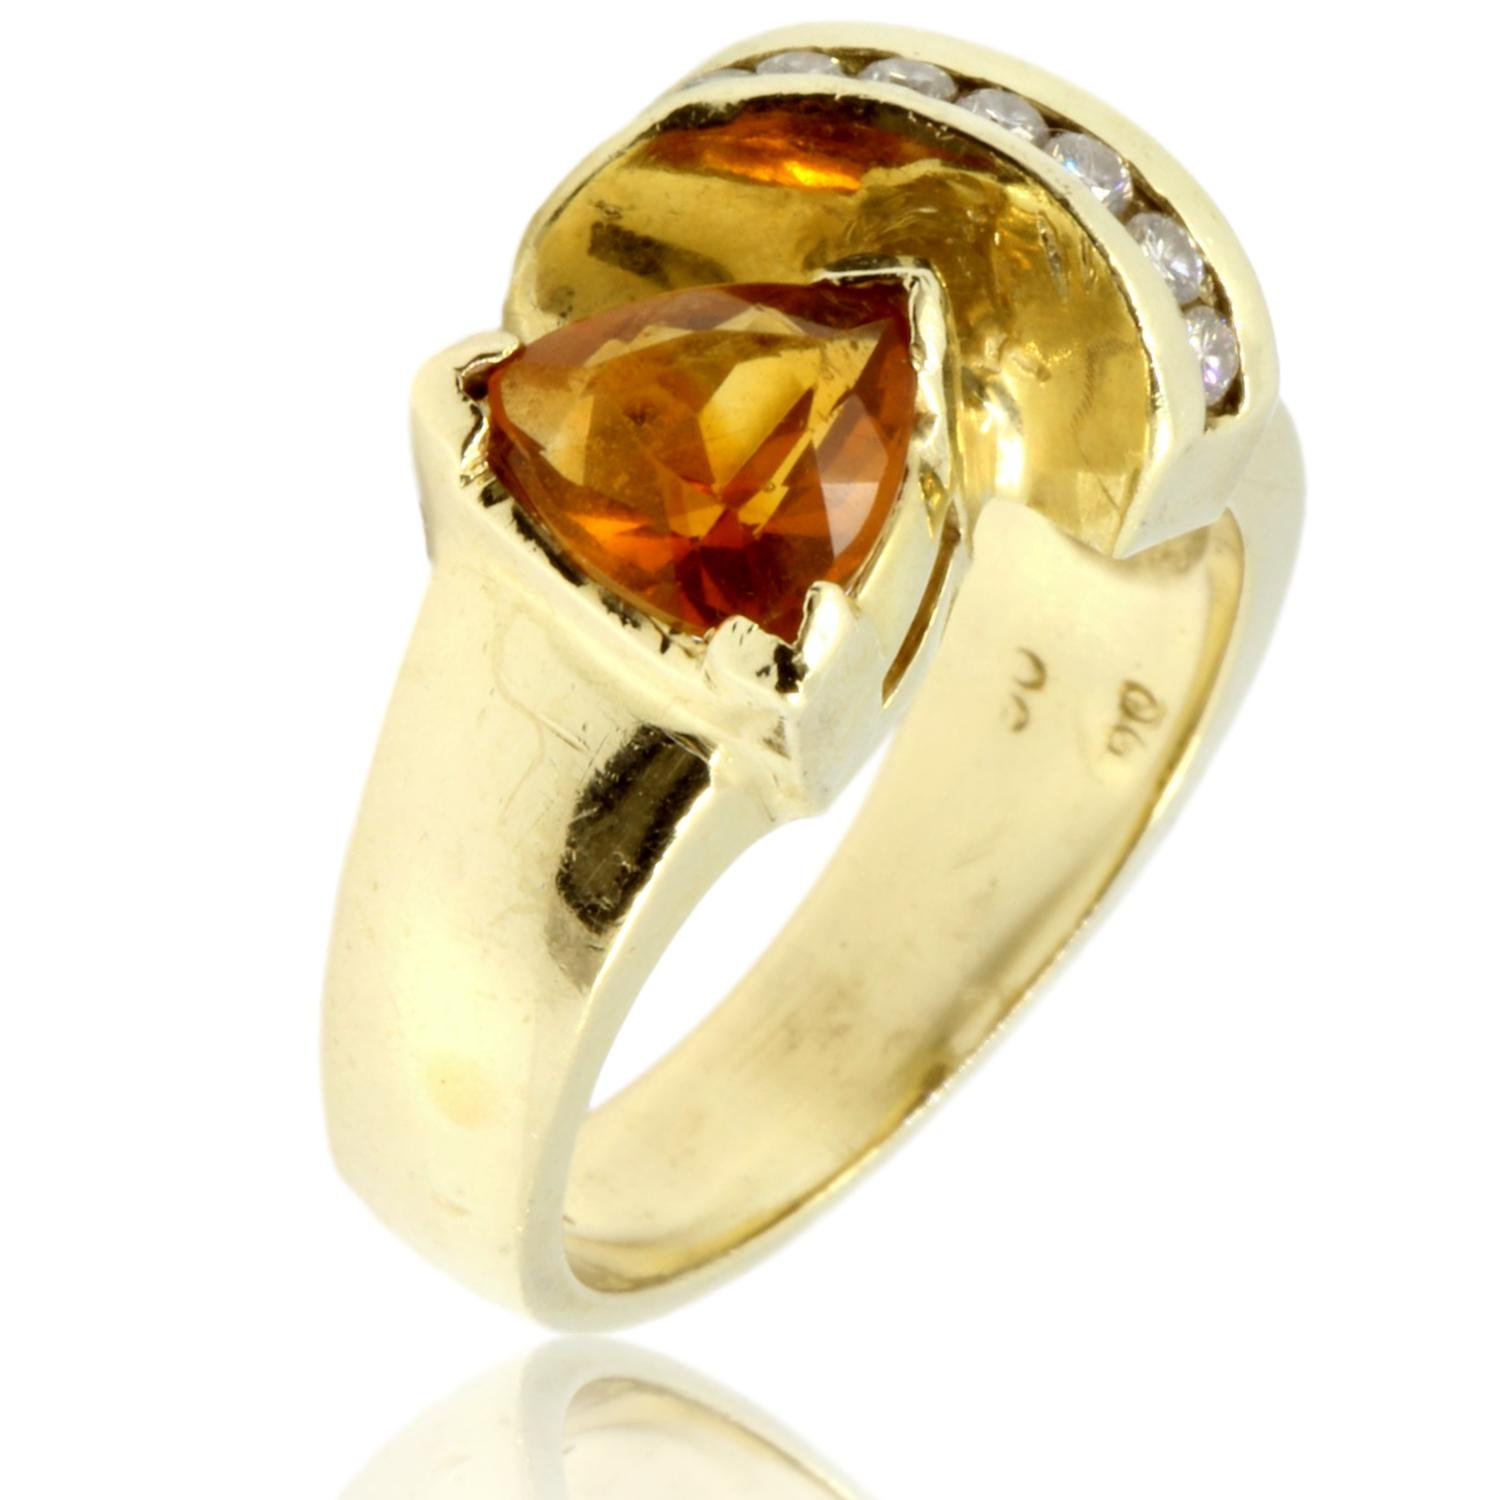 14K-Gold-1.31ct-Citrine--.15ctw-Diamond-Ring_88318A.jpg